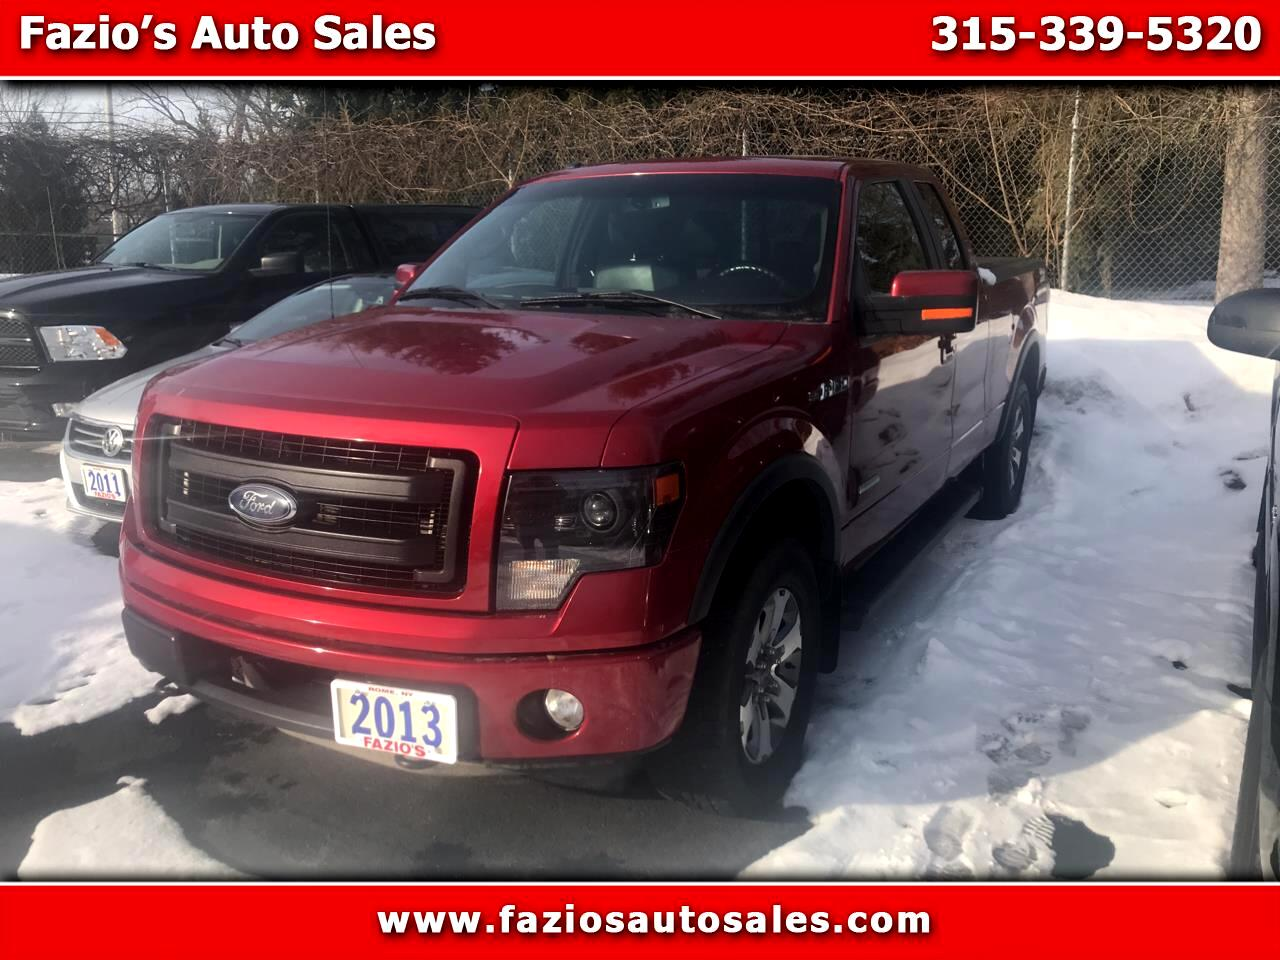 "2013 Ford F-150 Supercab Flareside 145"" FX4 4WD"